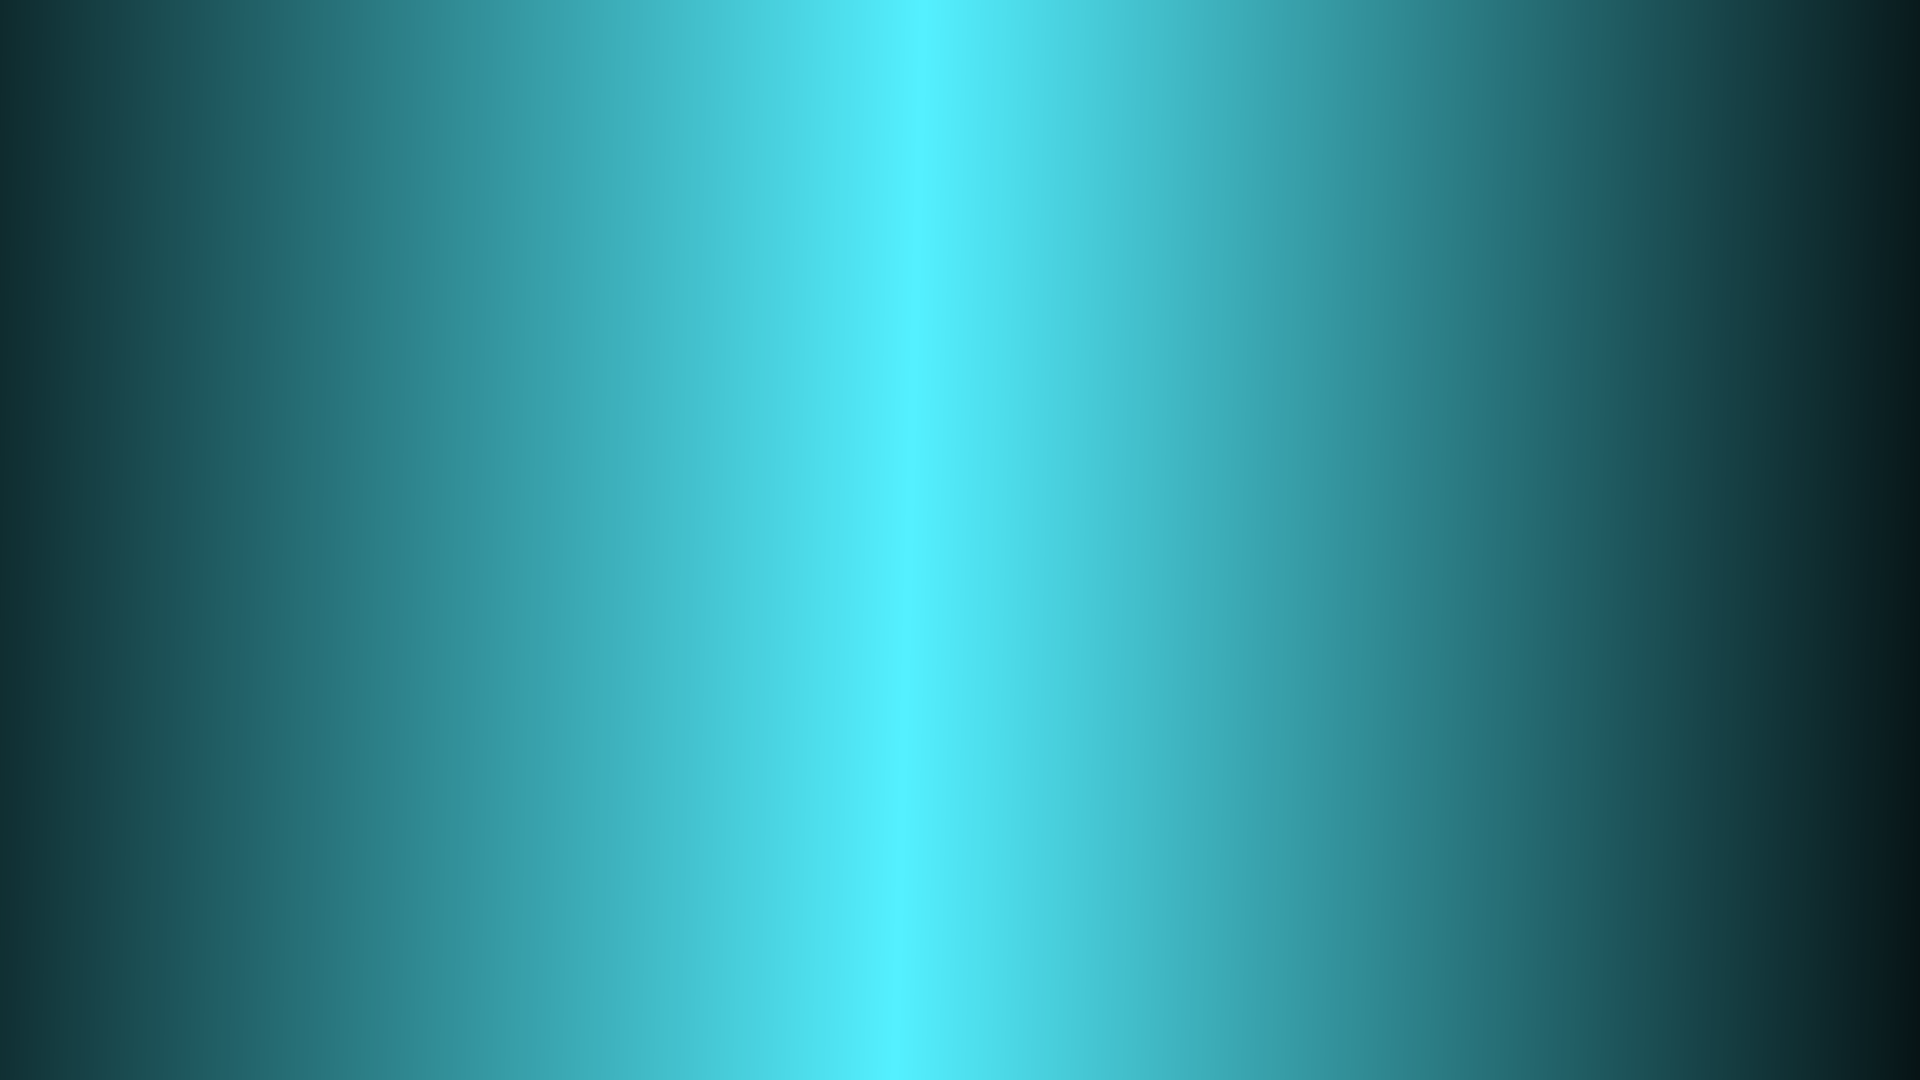 201201Sky Blue and Black Central Gradient Desktop Wallpaperpng 1920x1080